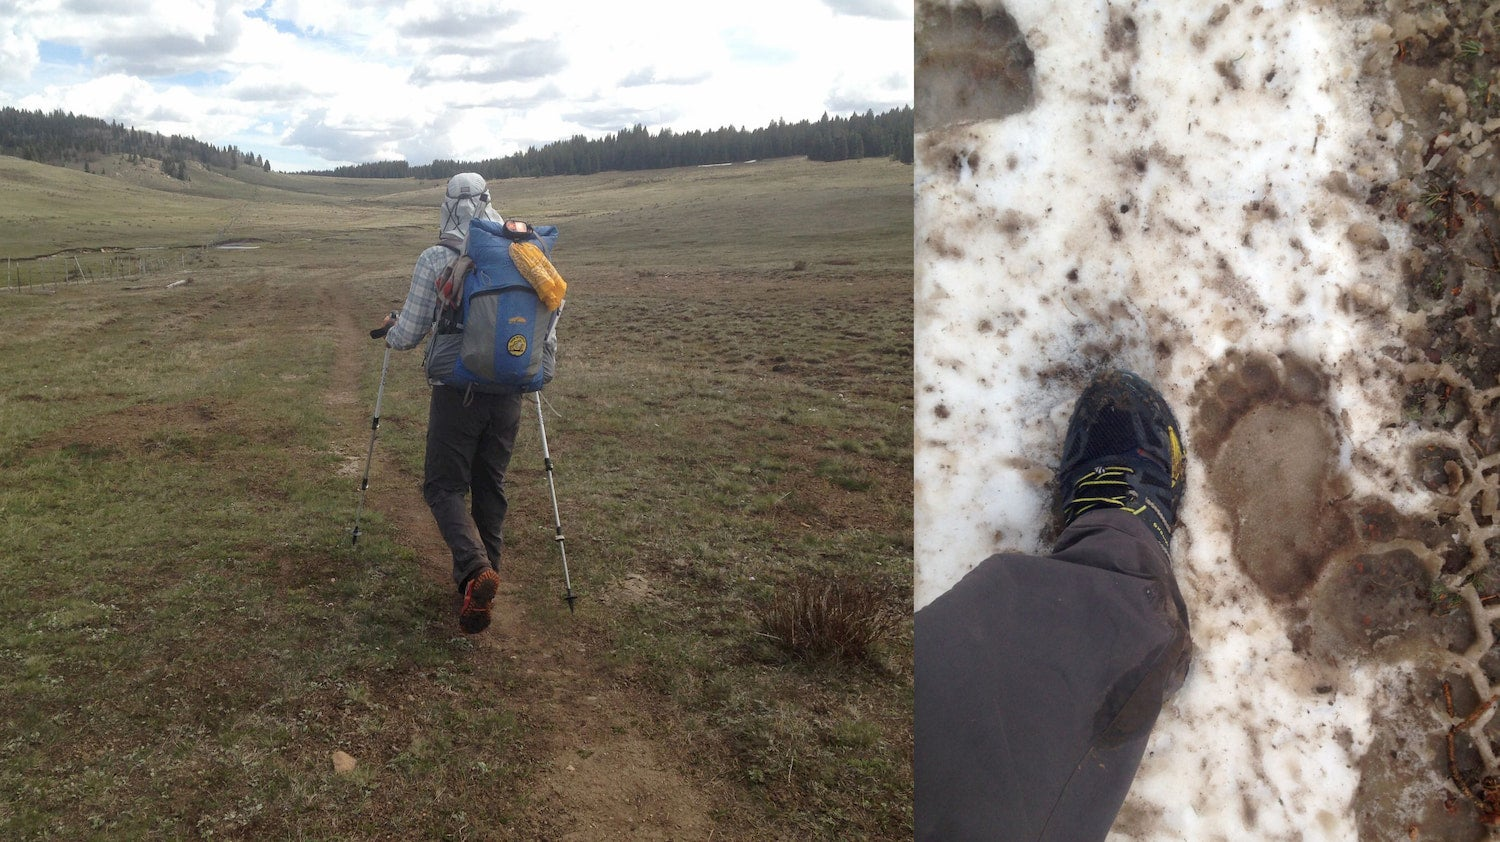 Left: Backpacker hiking through a field Right: Hiker wearing Brooks Cascadia while hiking through snow